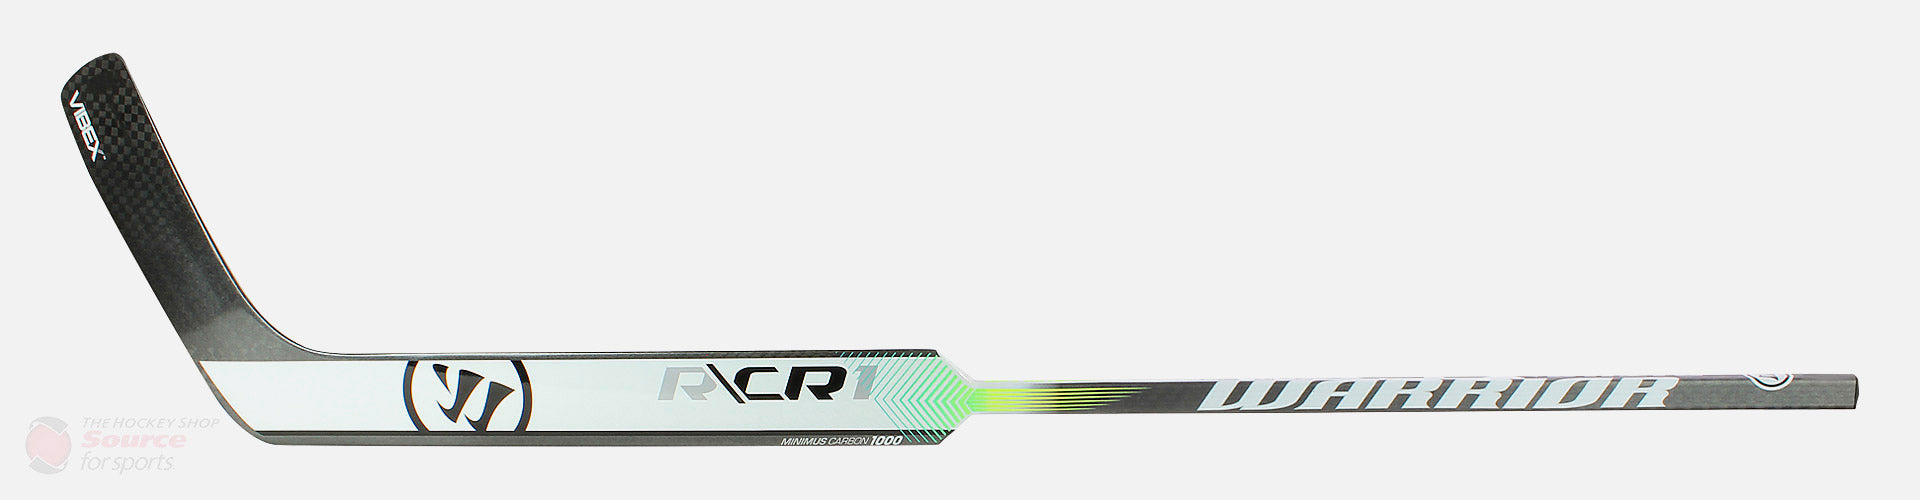 Warrior Ritual CR1 Senior Composite Goal Stick - Silver / White